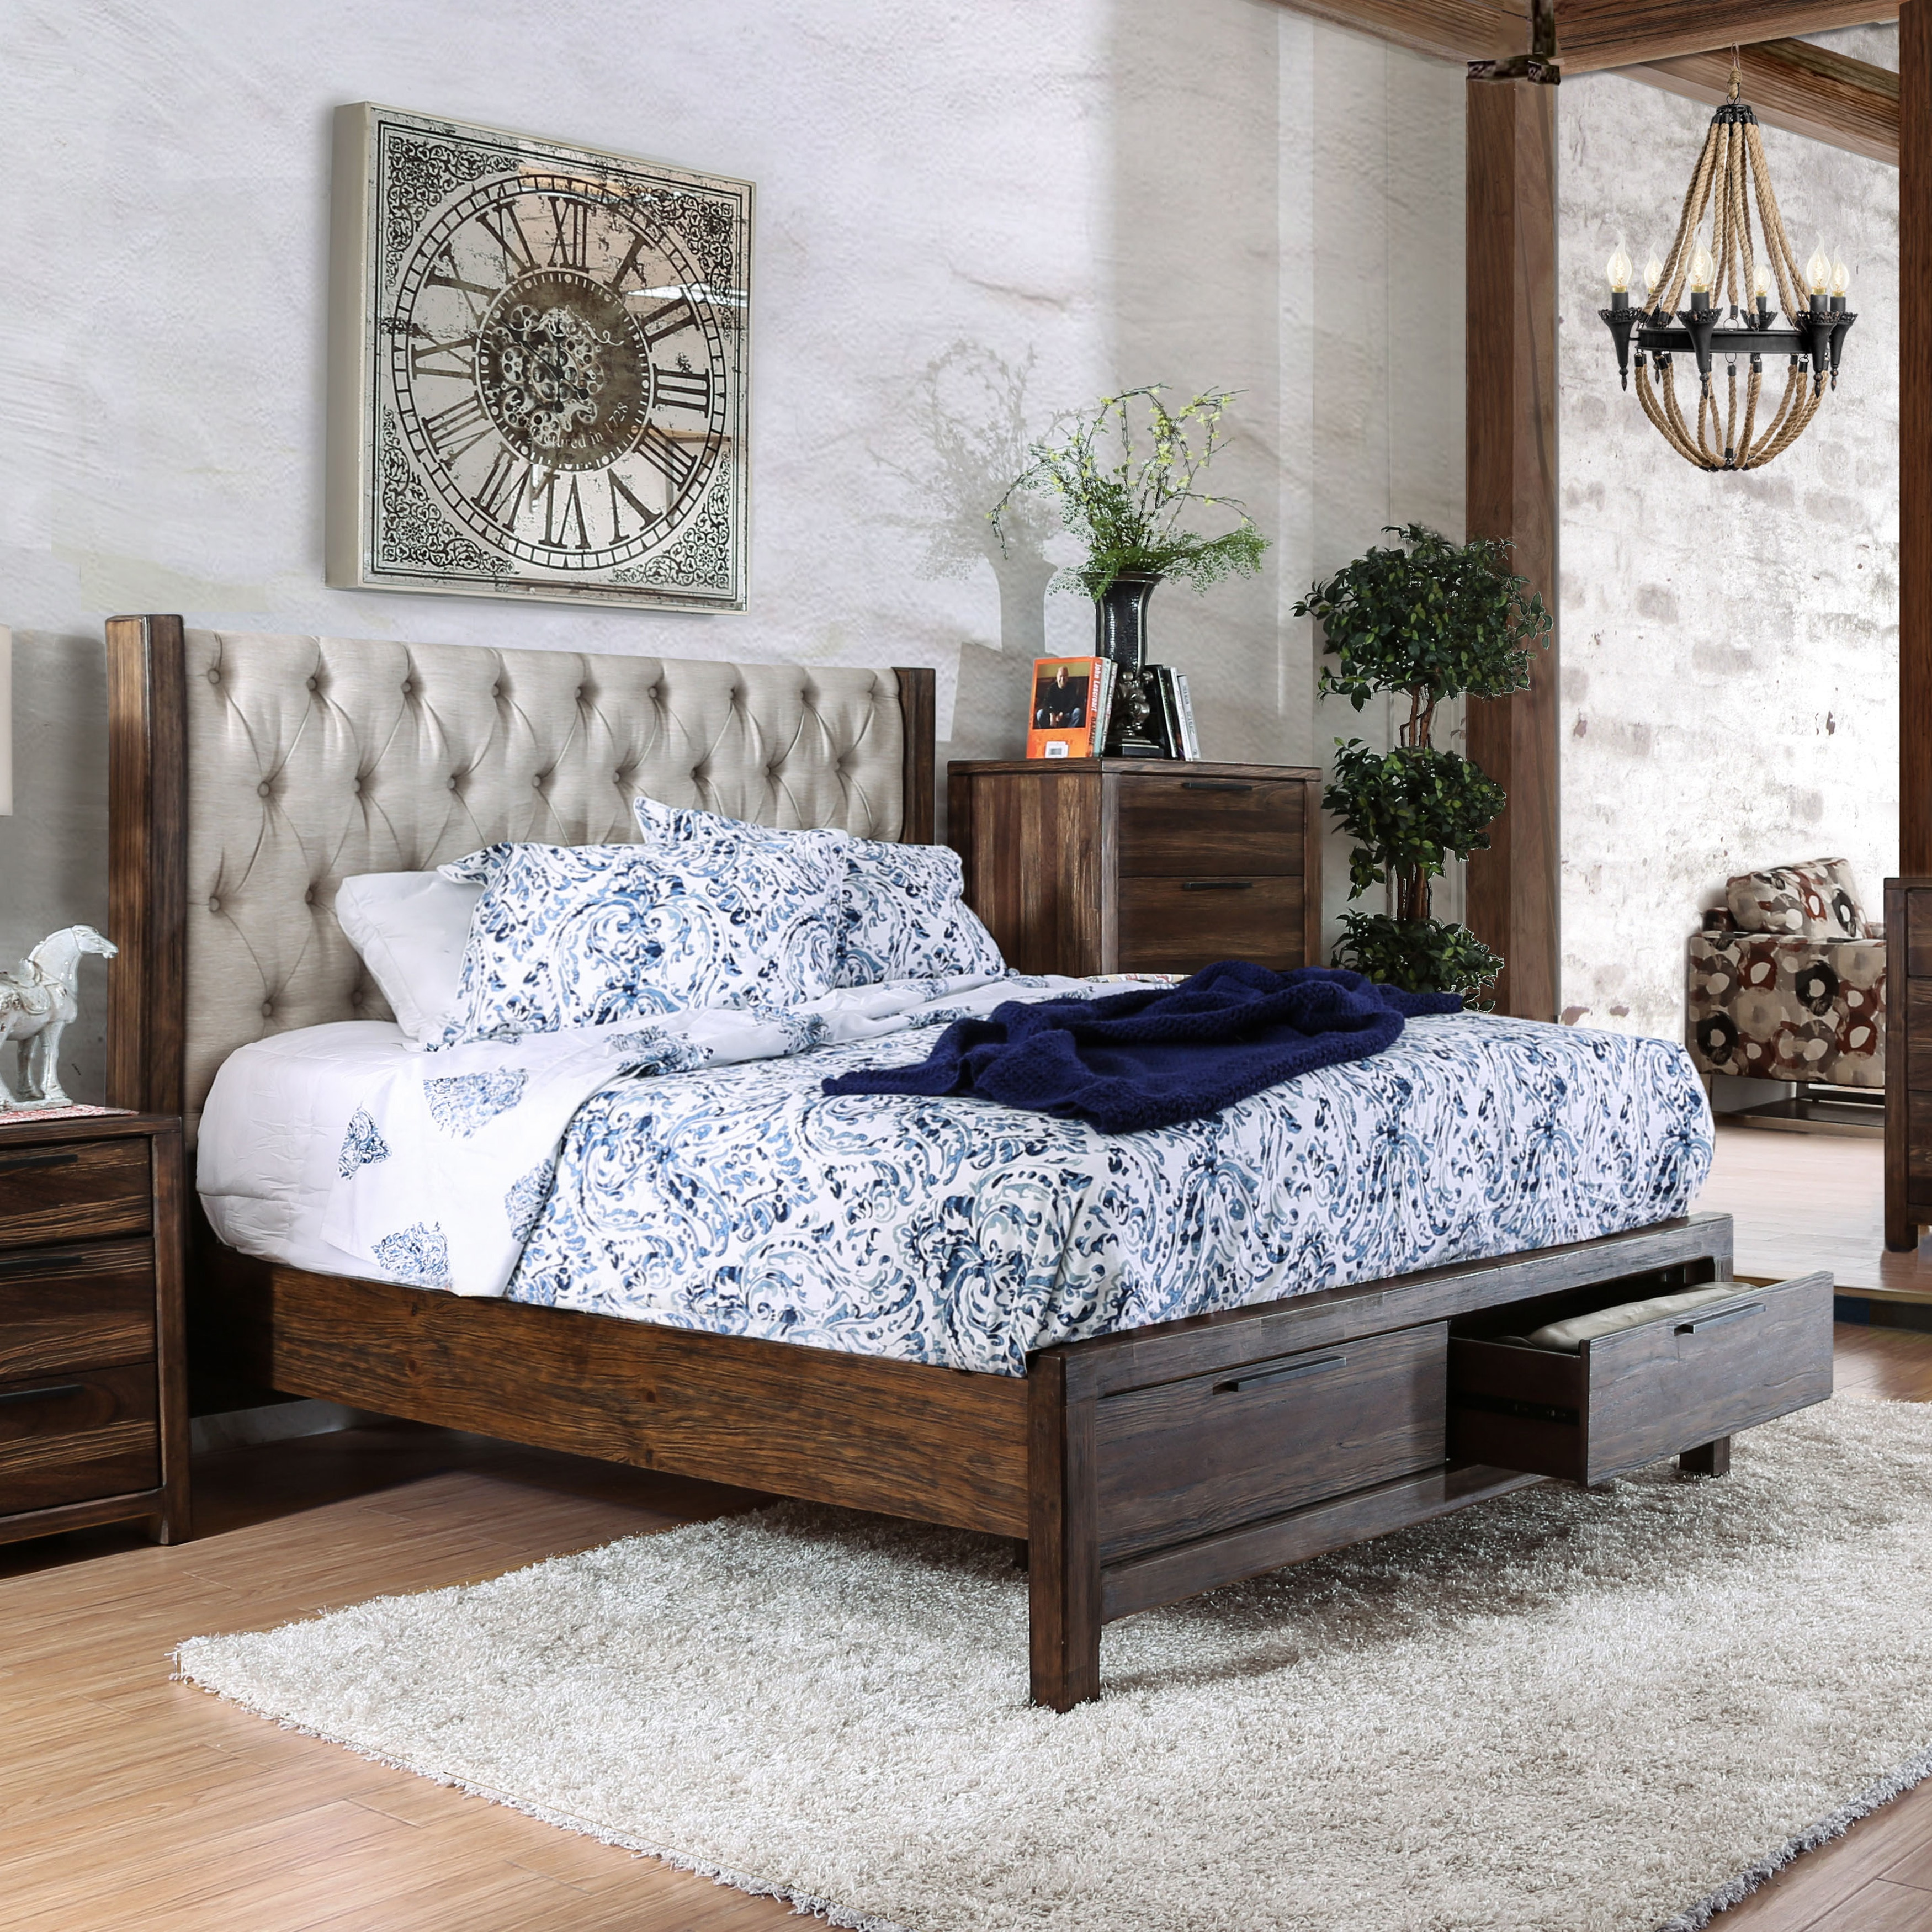 Andrea ii contemporary rustic natural storage bed by foa